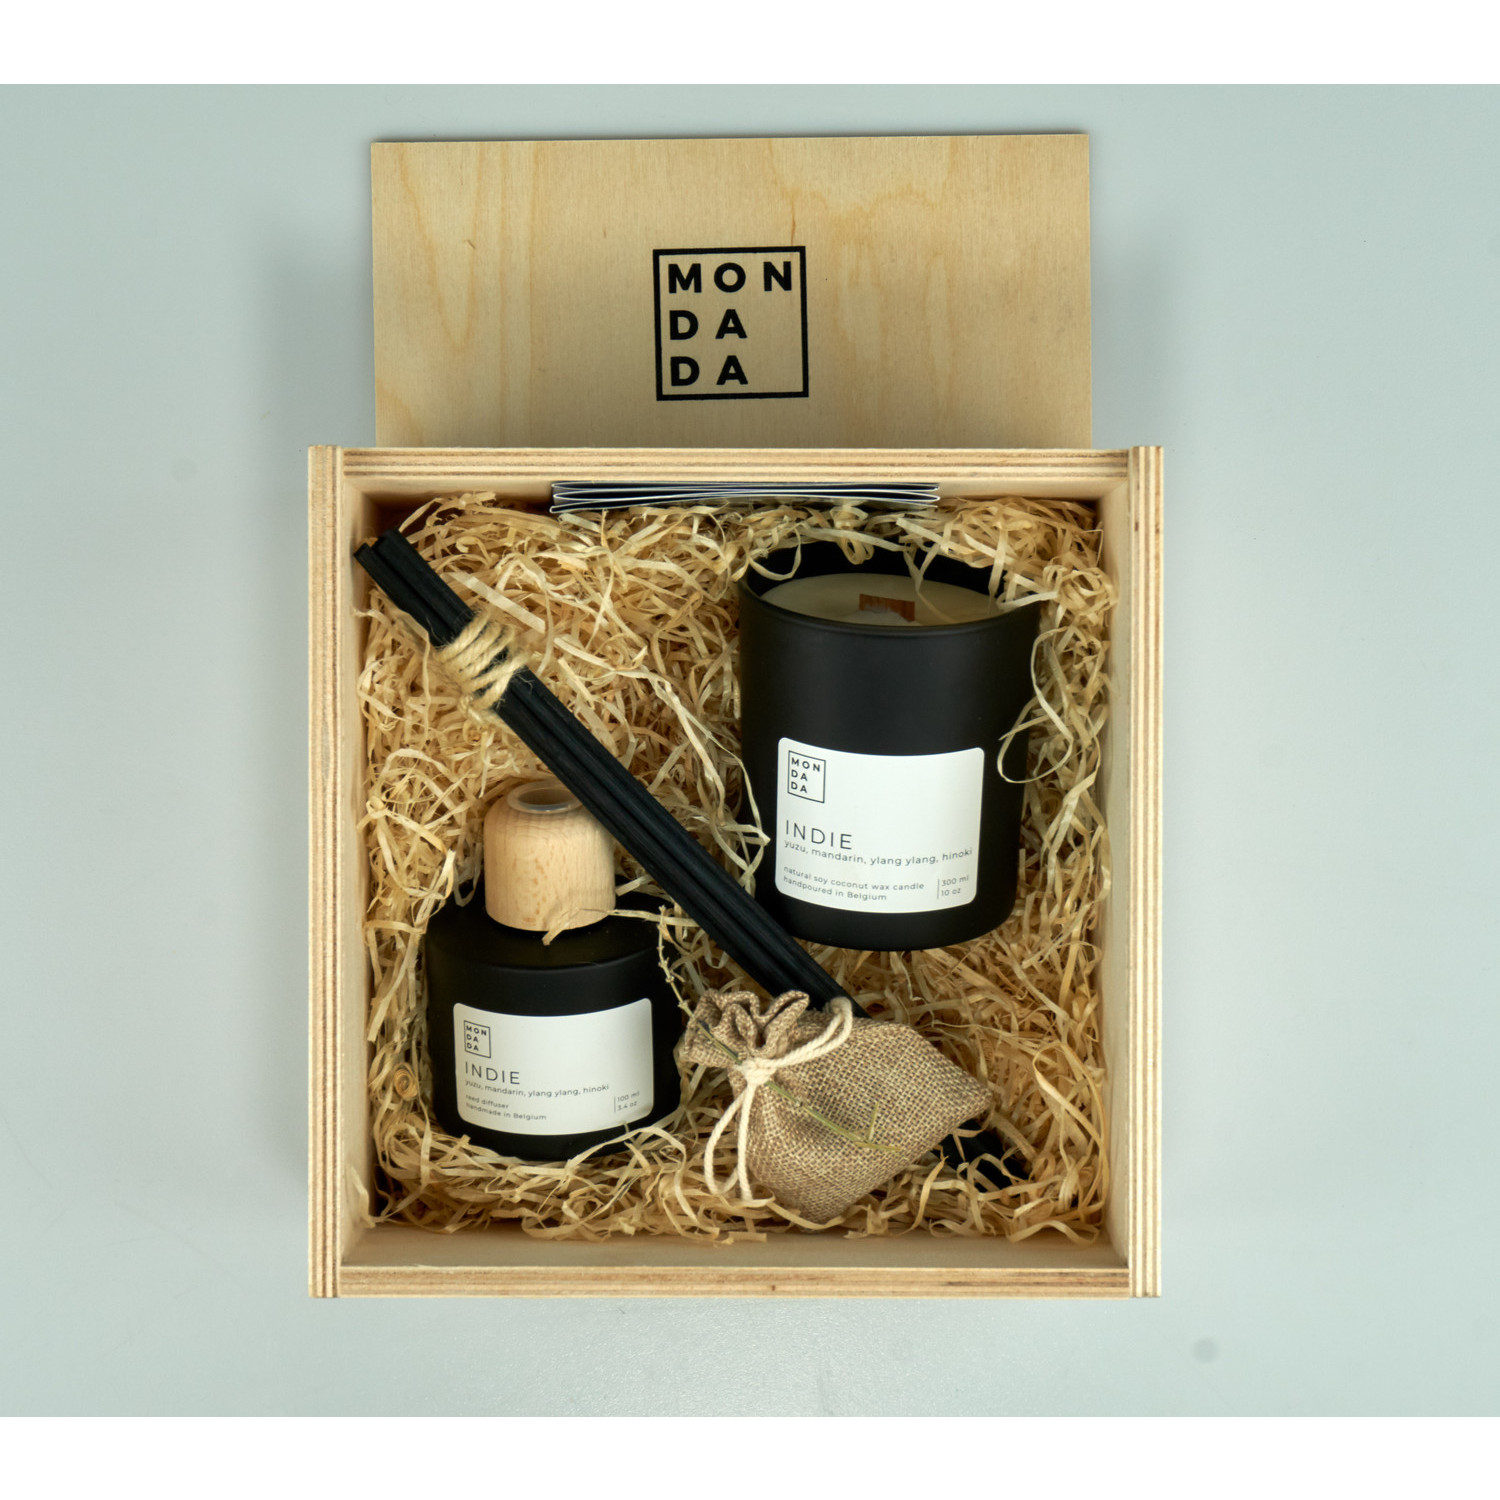 Scented Candle and Diffuser | Indie